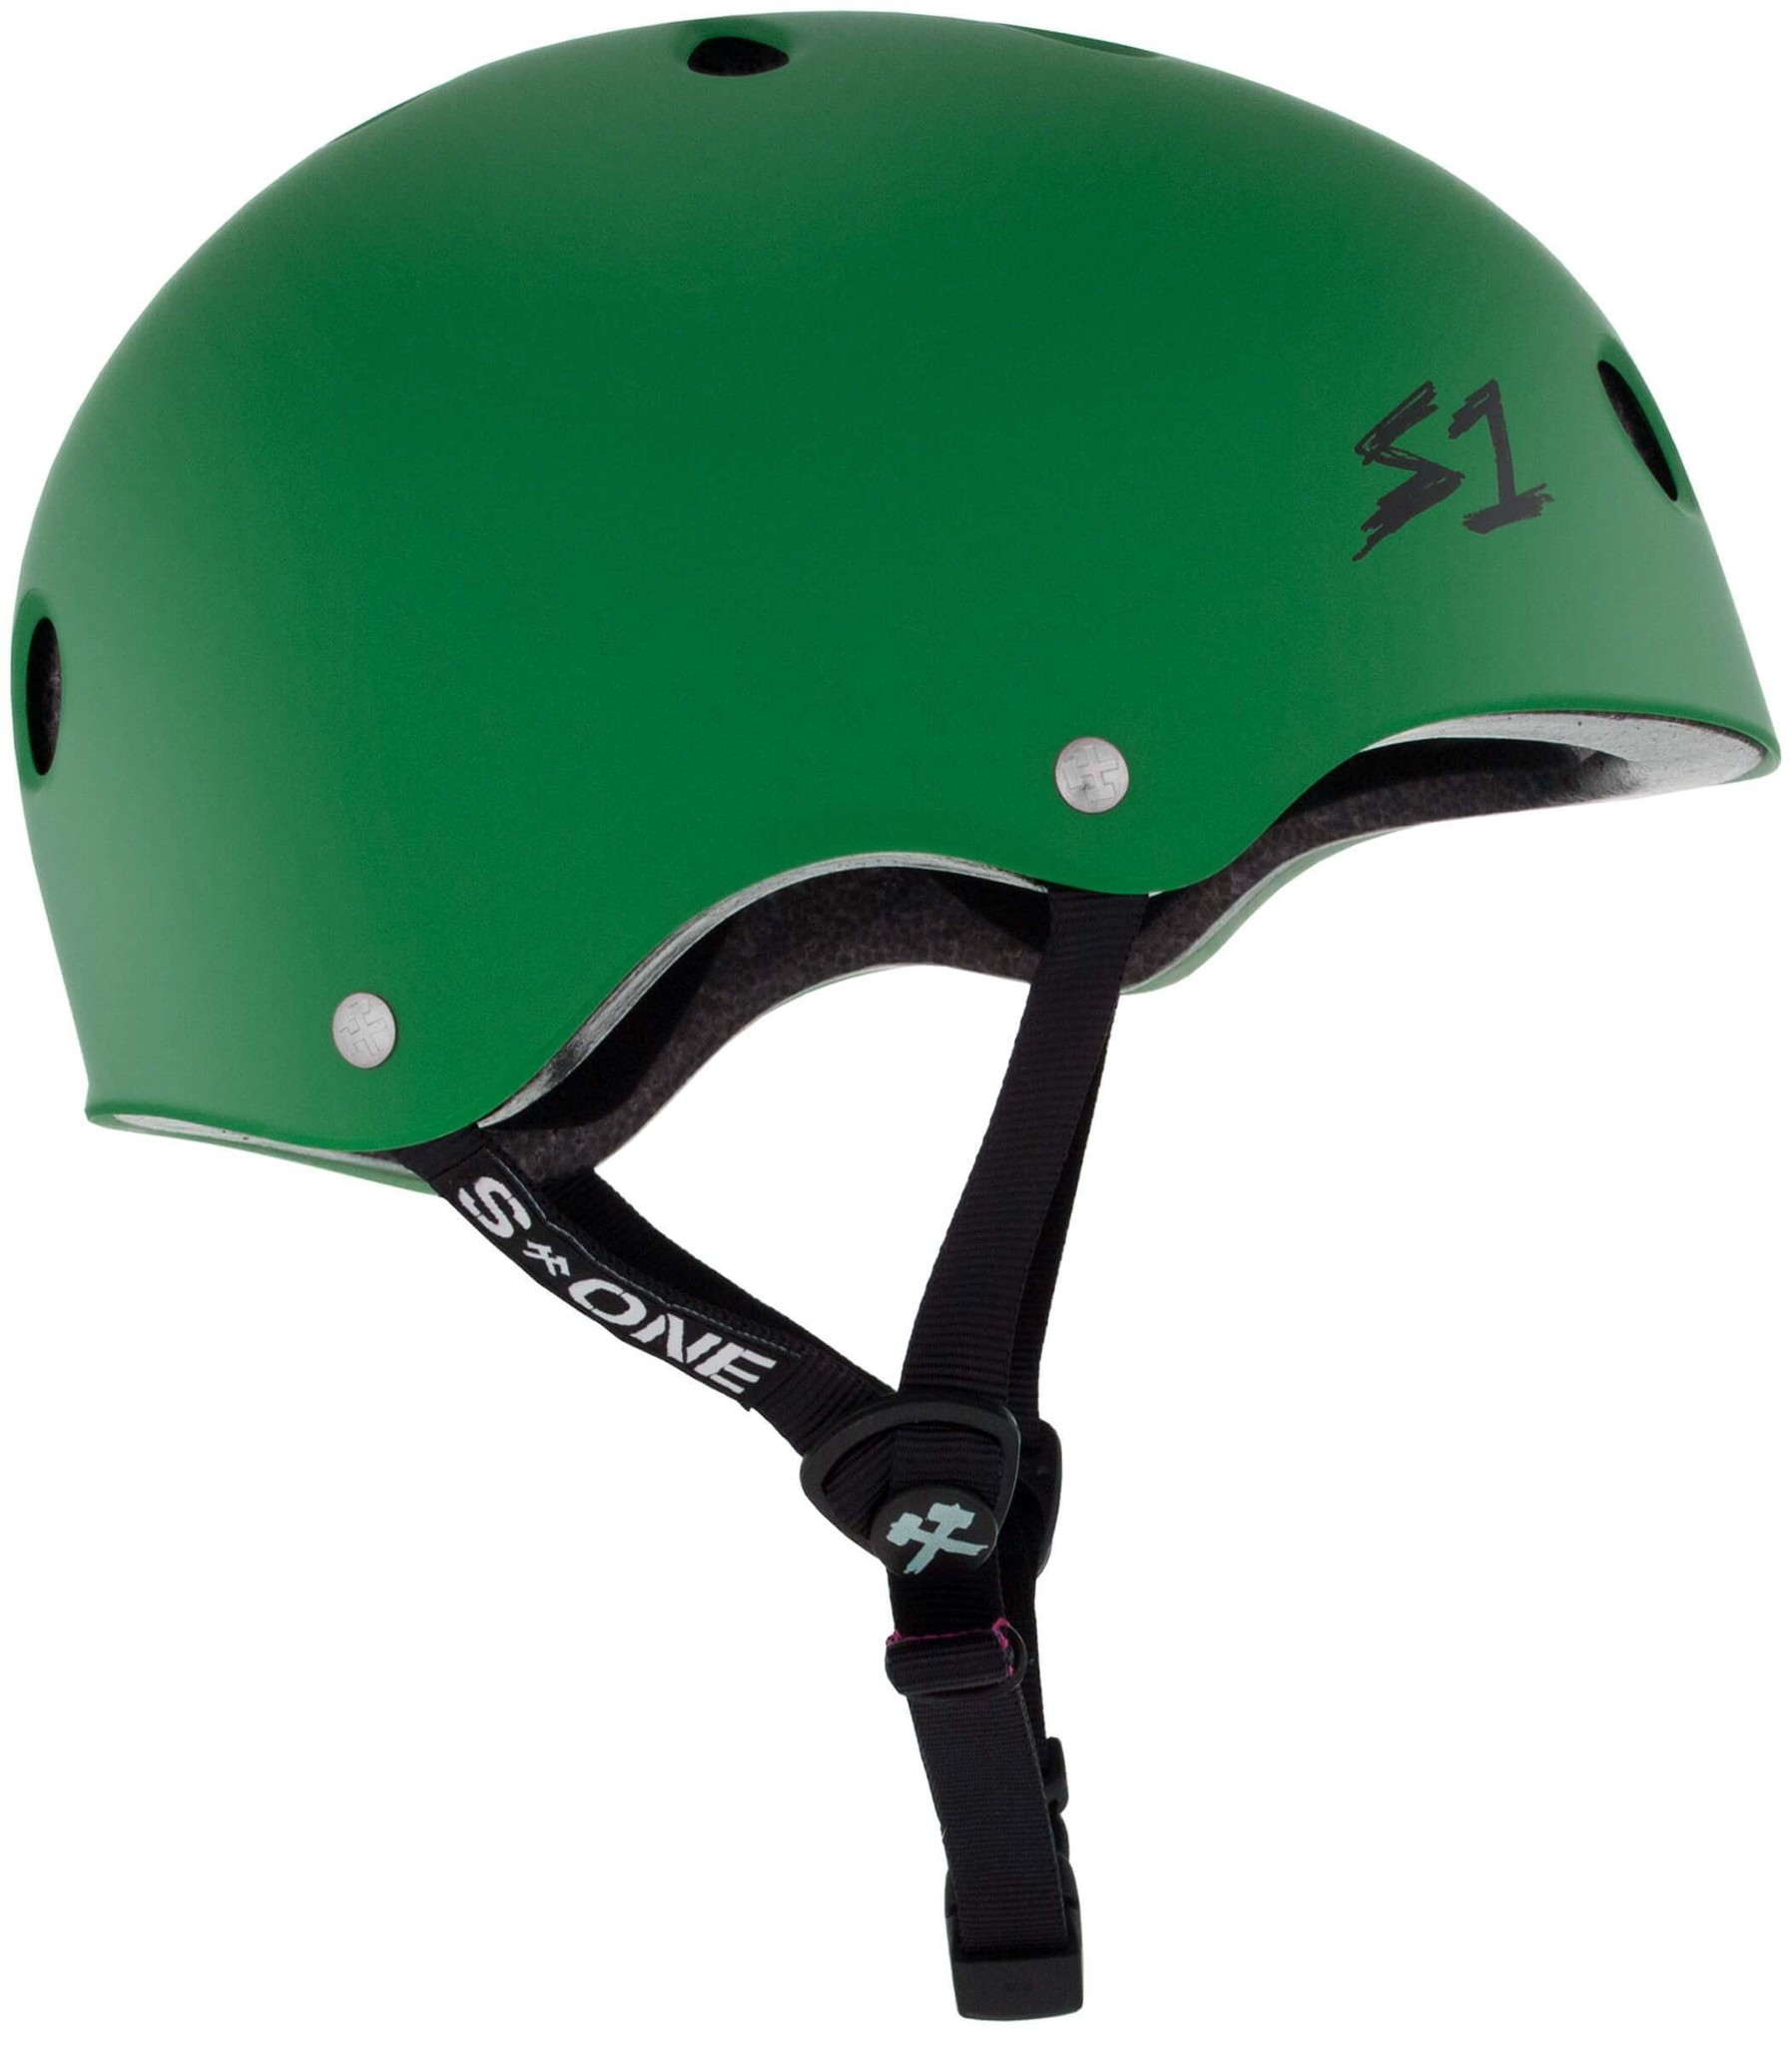 S1 LIFER HELMET - KELLY GREEN